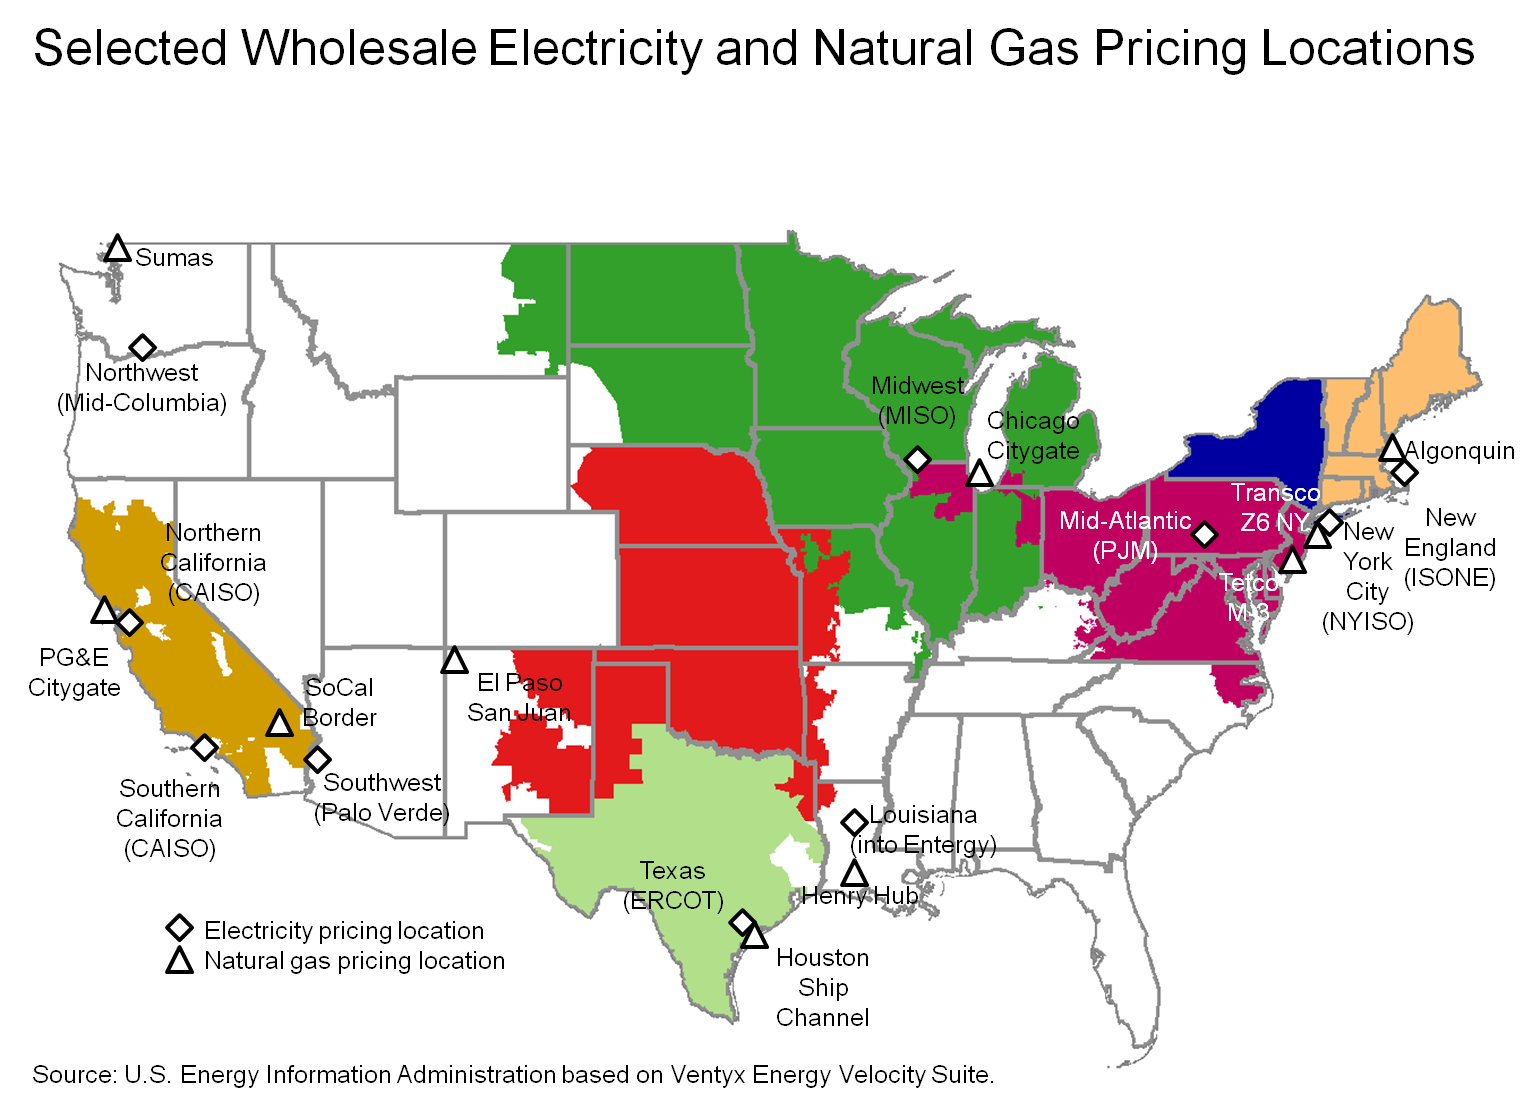 Maps US Energy Information Administration EIA - Simple map of eastern us